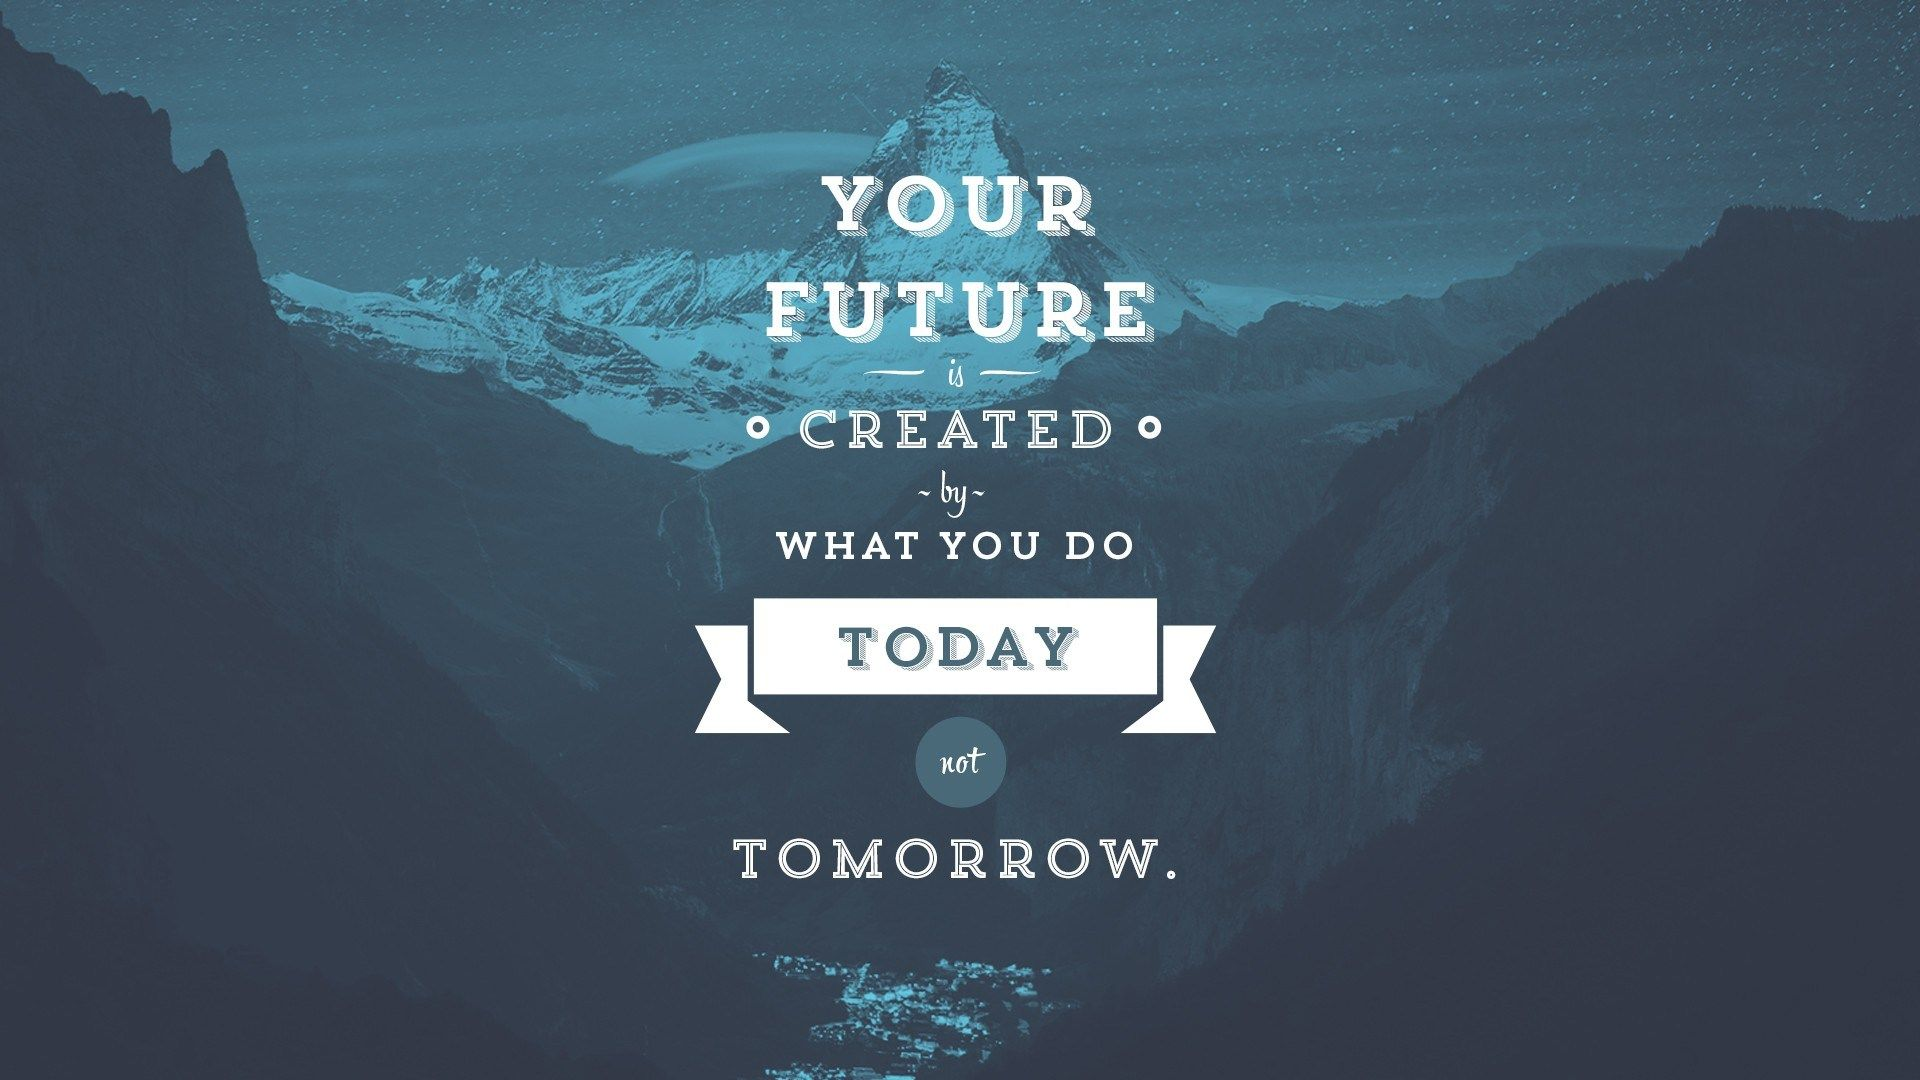 Your Future Is Created By What You Do Today Not Tomorrow Wise Words Wallpaper Quotes